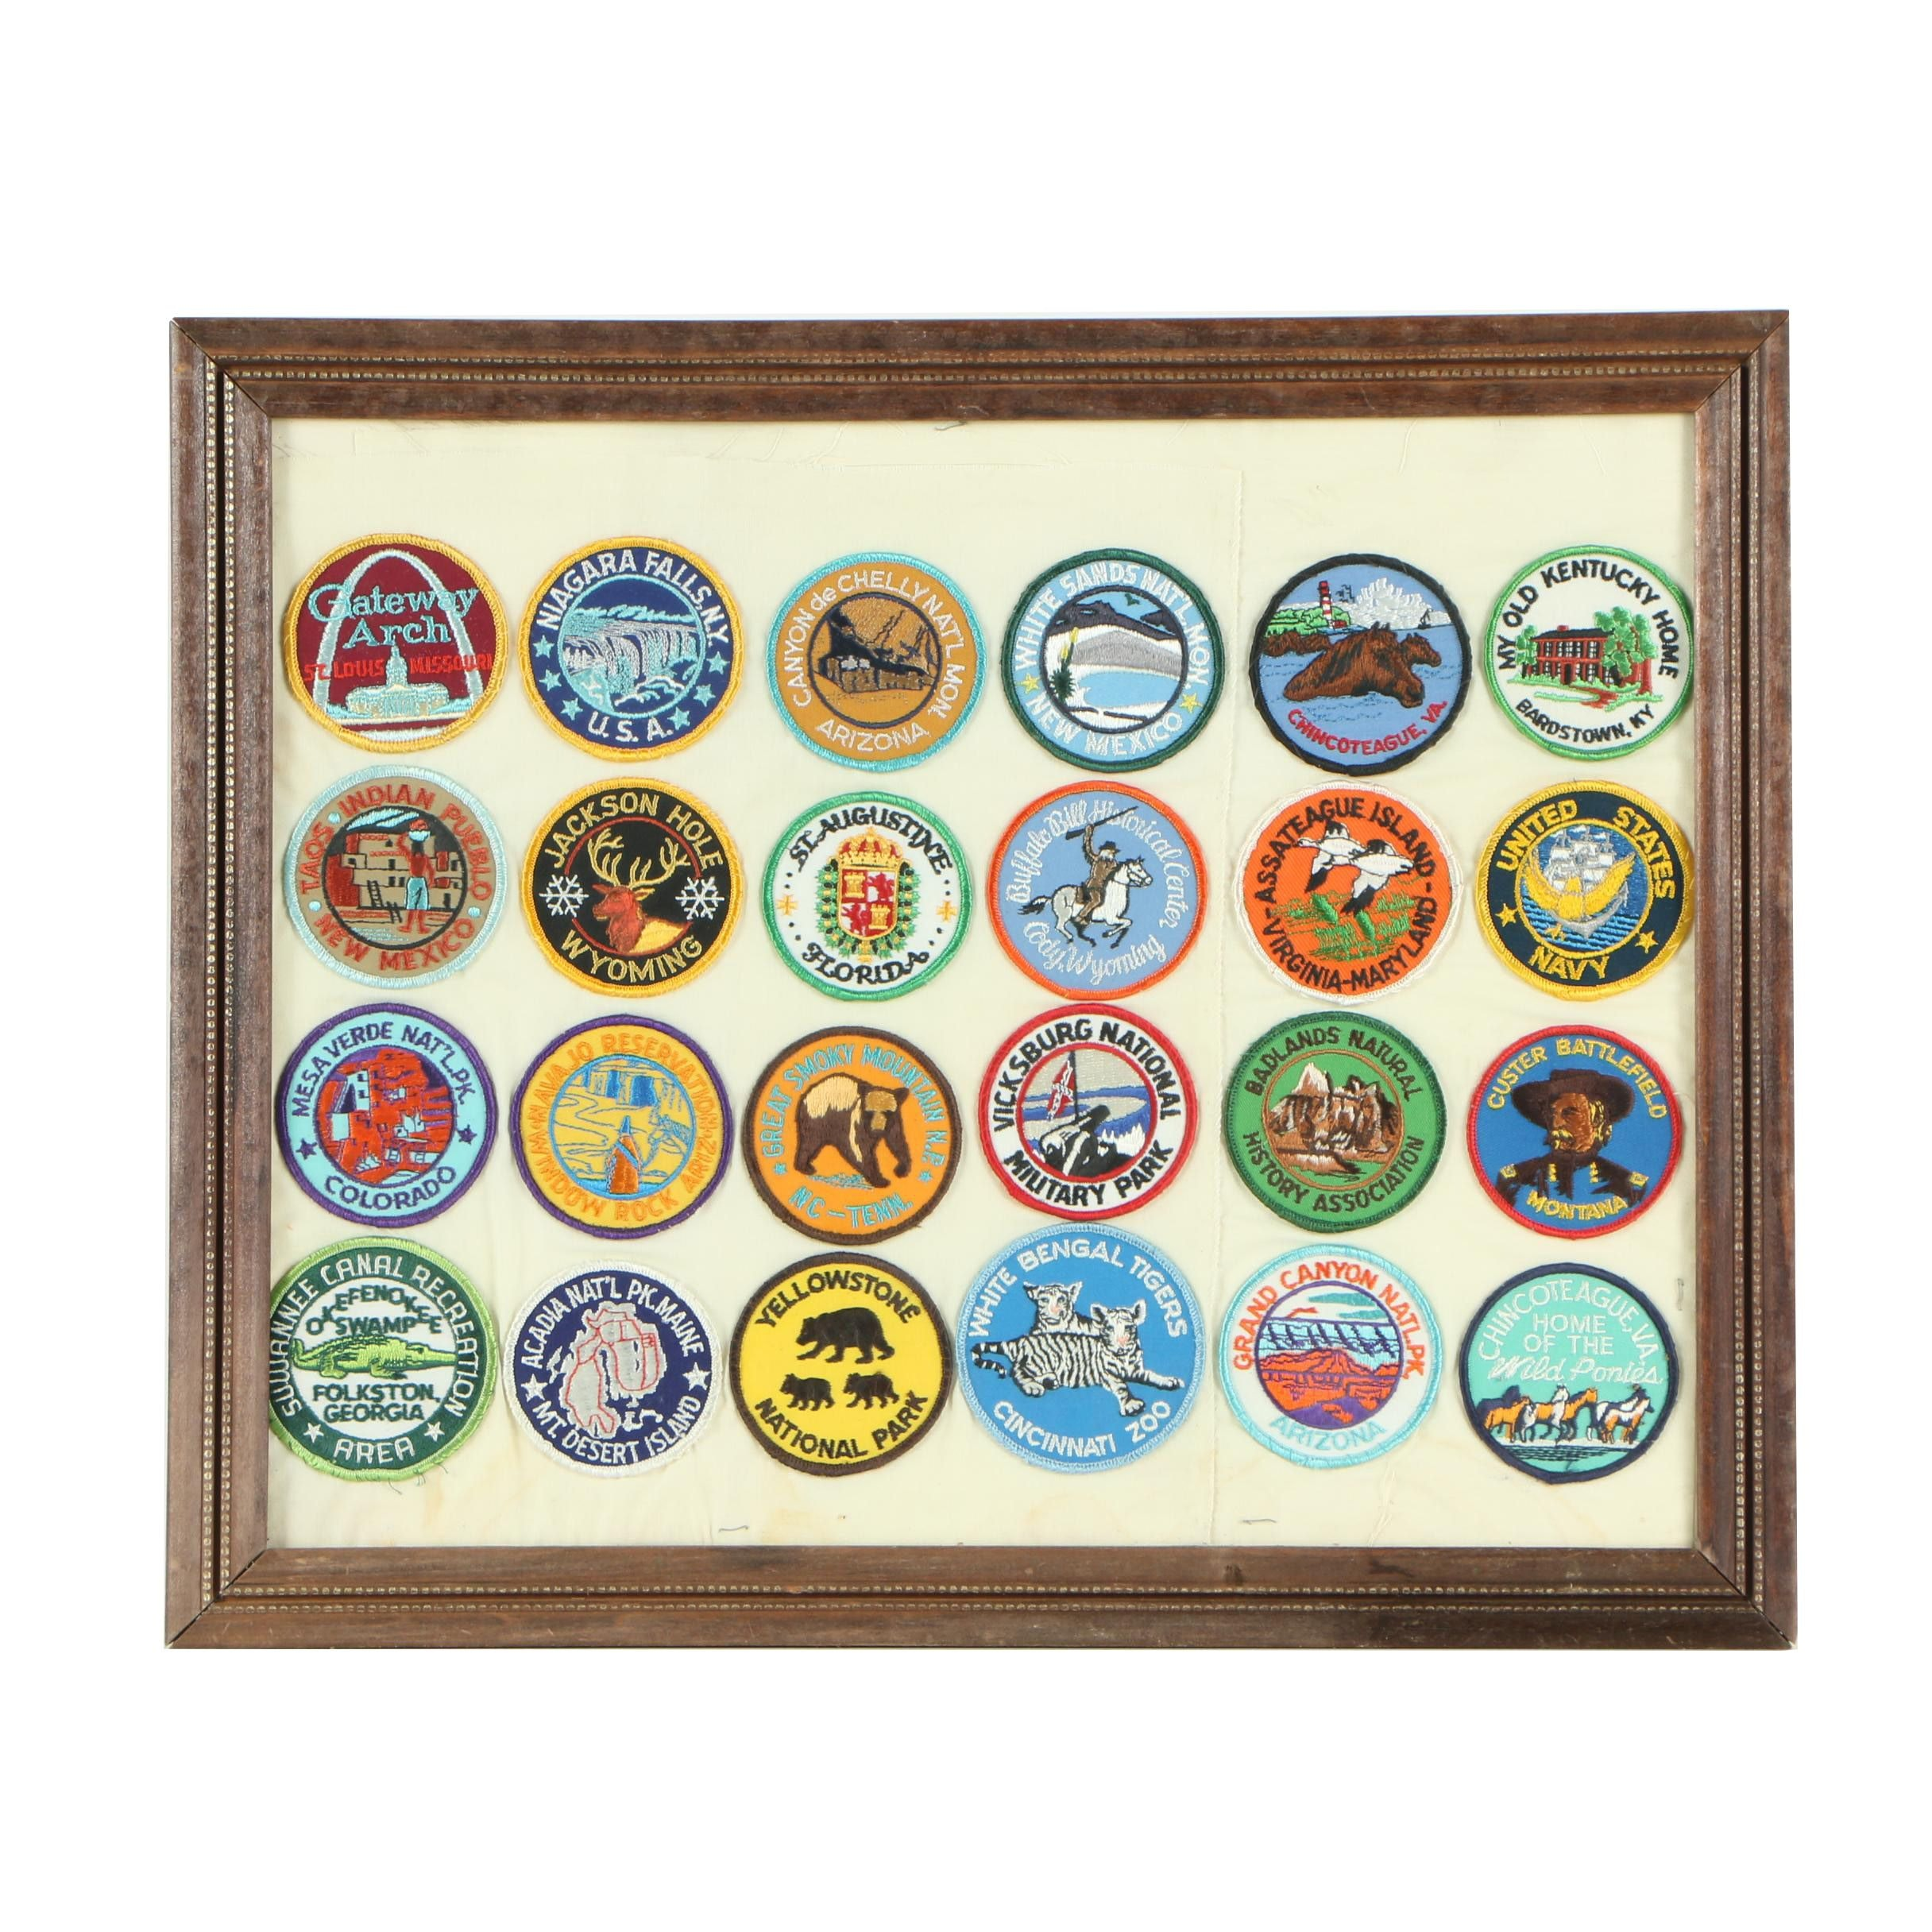 Framed Embroidered U.S. Tourist Patches